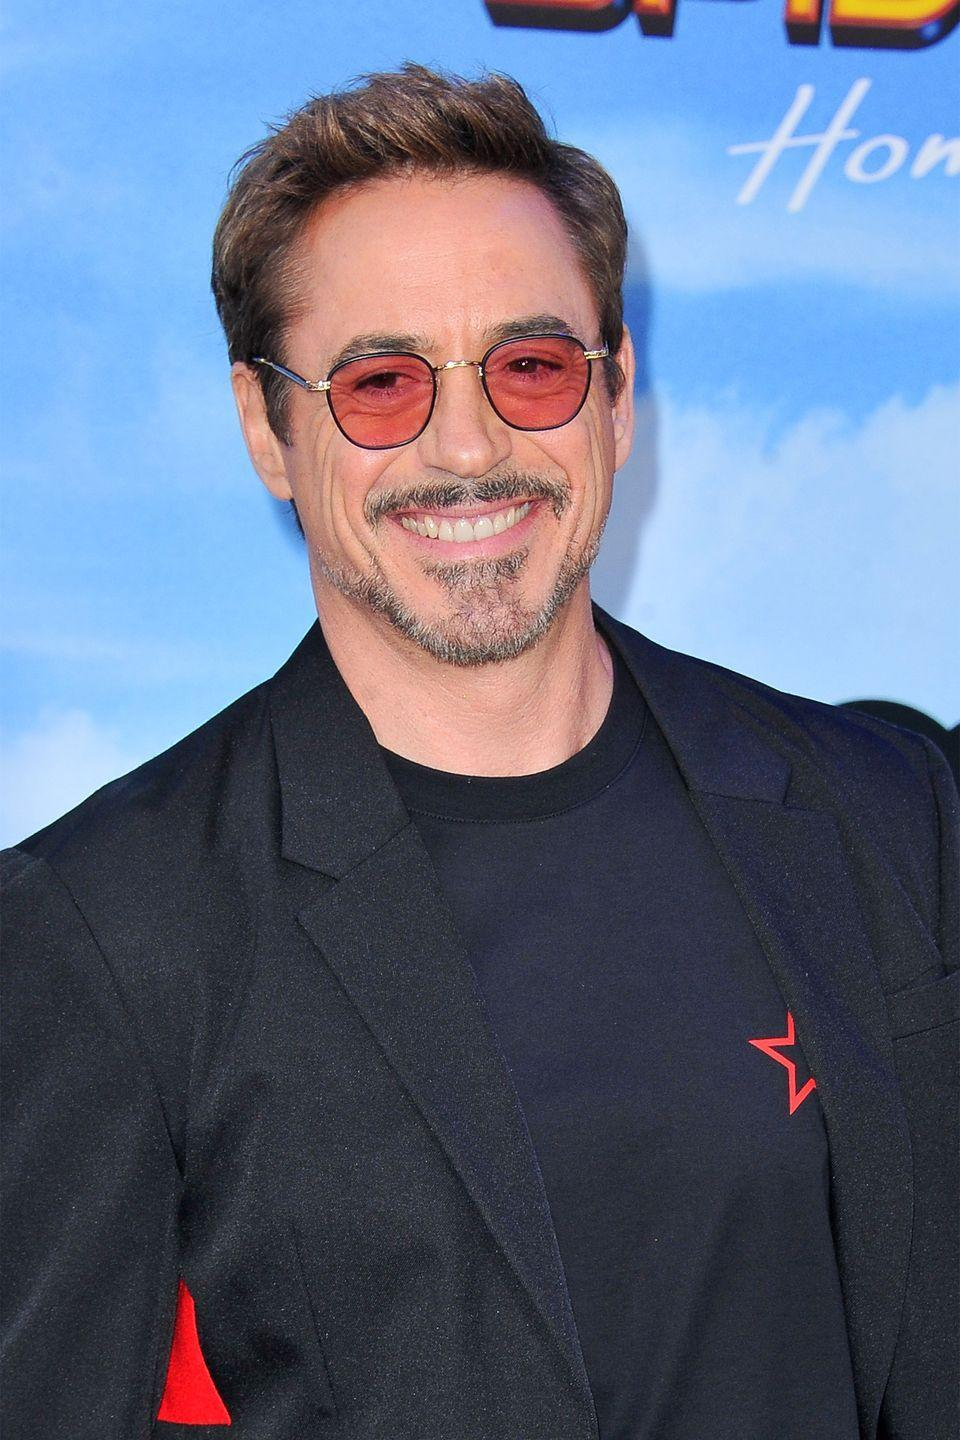 "<p>The <em>Iron Man </em>star <a href=""https://www.rollingstone.com/culture/pictures/dropout-boogie-14-celebs-who-never-got-their-degree-20140528/robert-downey-jr-0636349"" rel=""nofollow noopener"" target=""_blank"" data-ylk=""slk:dropped out"" class=""link rapid-noclick-resp"">dropped out</a> of Santa Monica High School after his junior year when his father gave him an ultimatum to ""either show up [to school] every day or quit and get a job."" The move definitely worked out for the A-List actor. </p>"